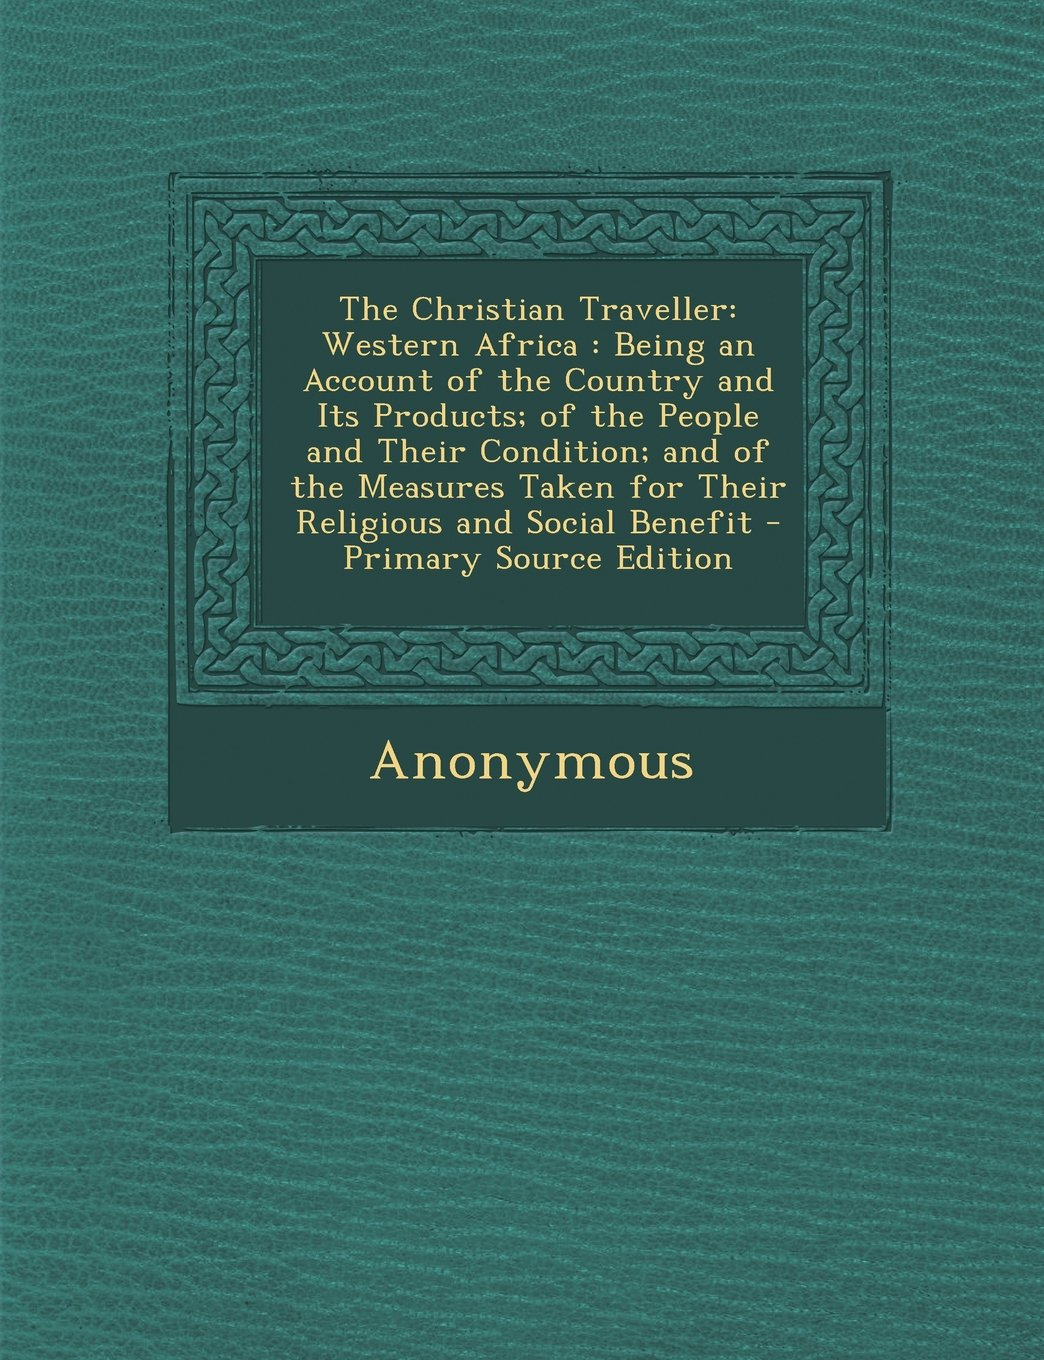 Download The Christian Traveller: Western Africa: Being an Account of the Country and Its Products; Of the People and Their Condition; And of the Measur pdf epub